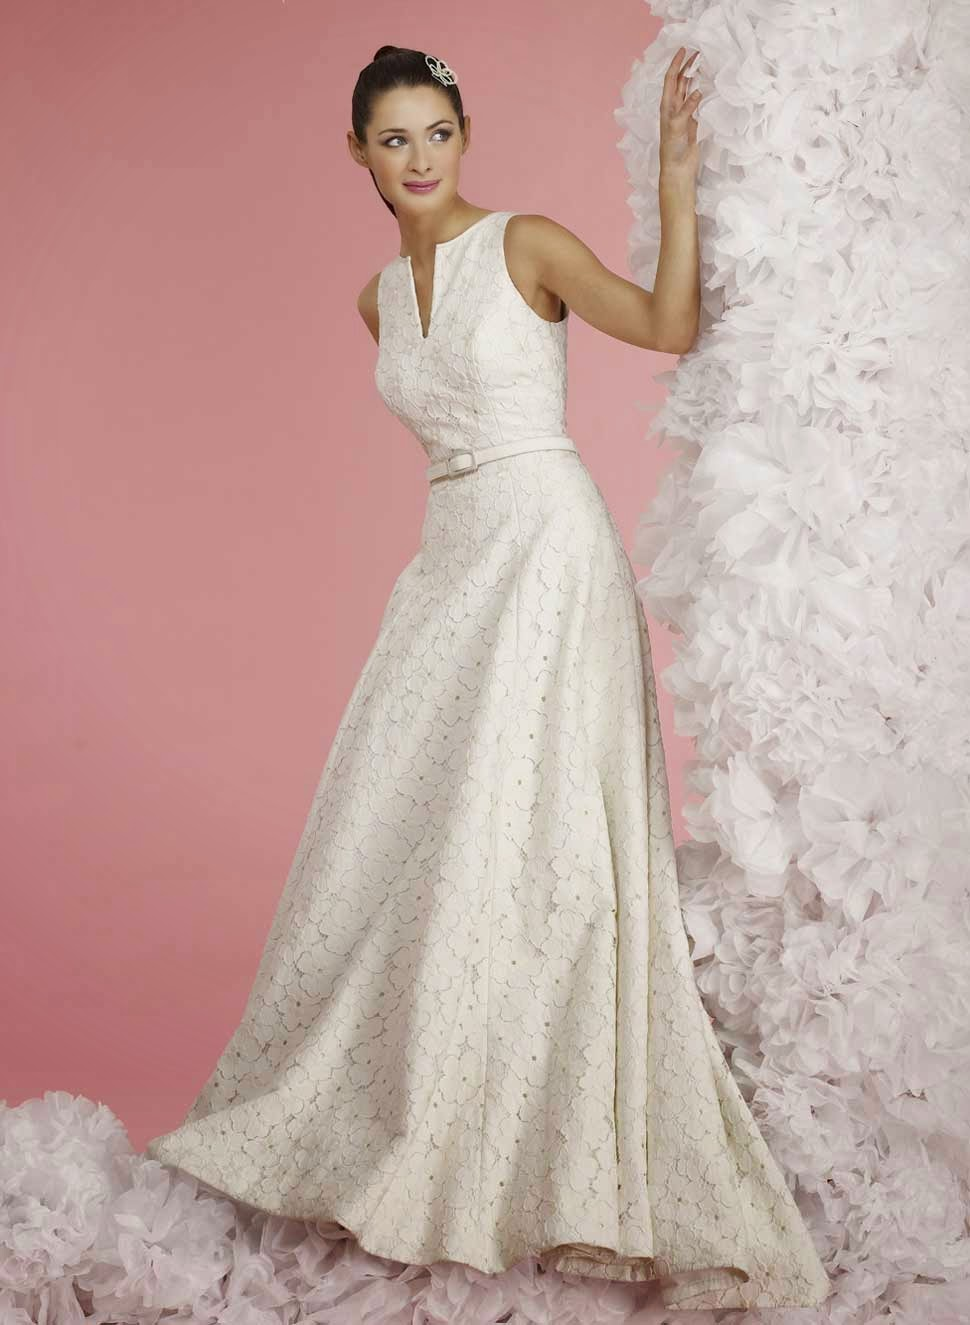 Vintage Strapless Wedding Dress Photos HD Concepts Ideas